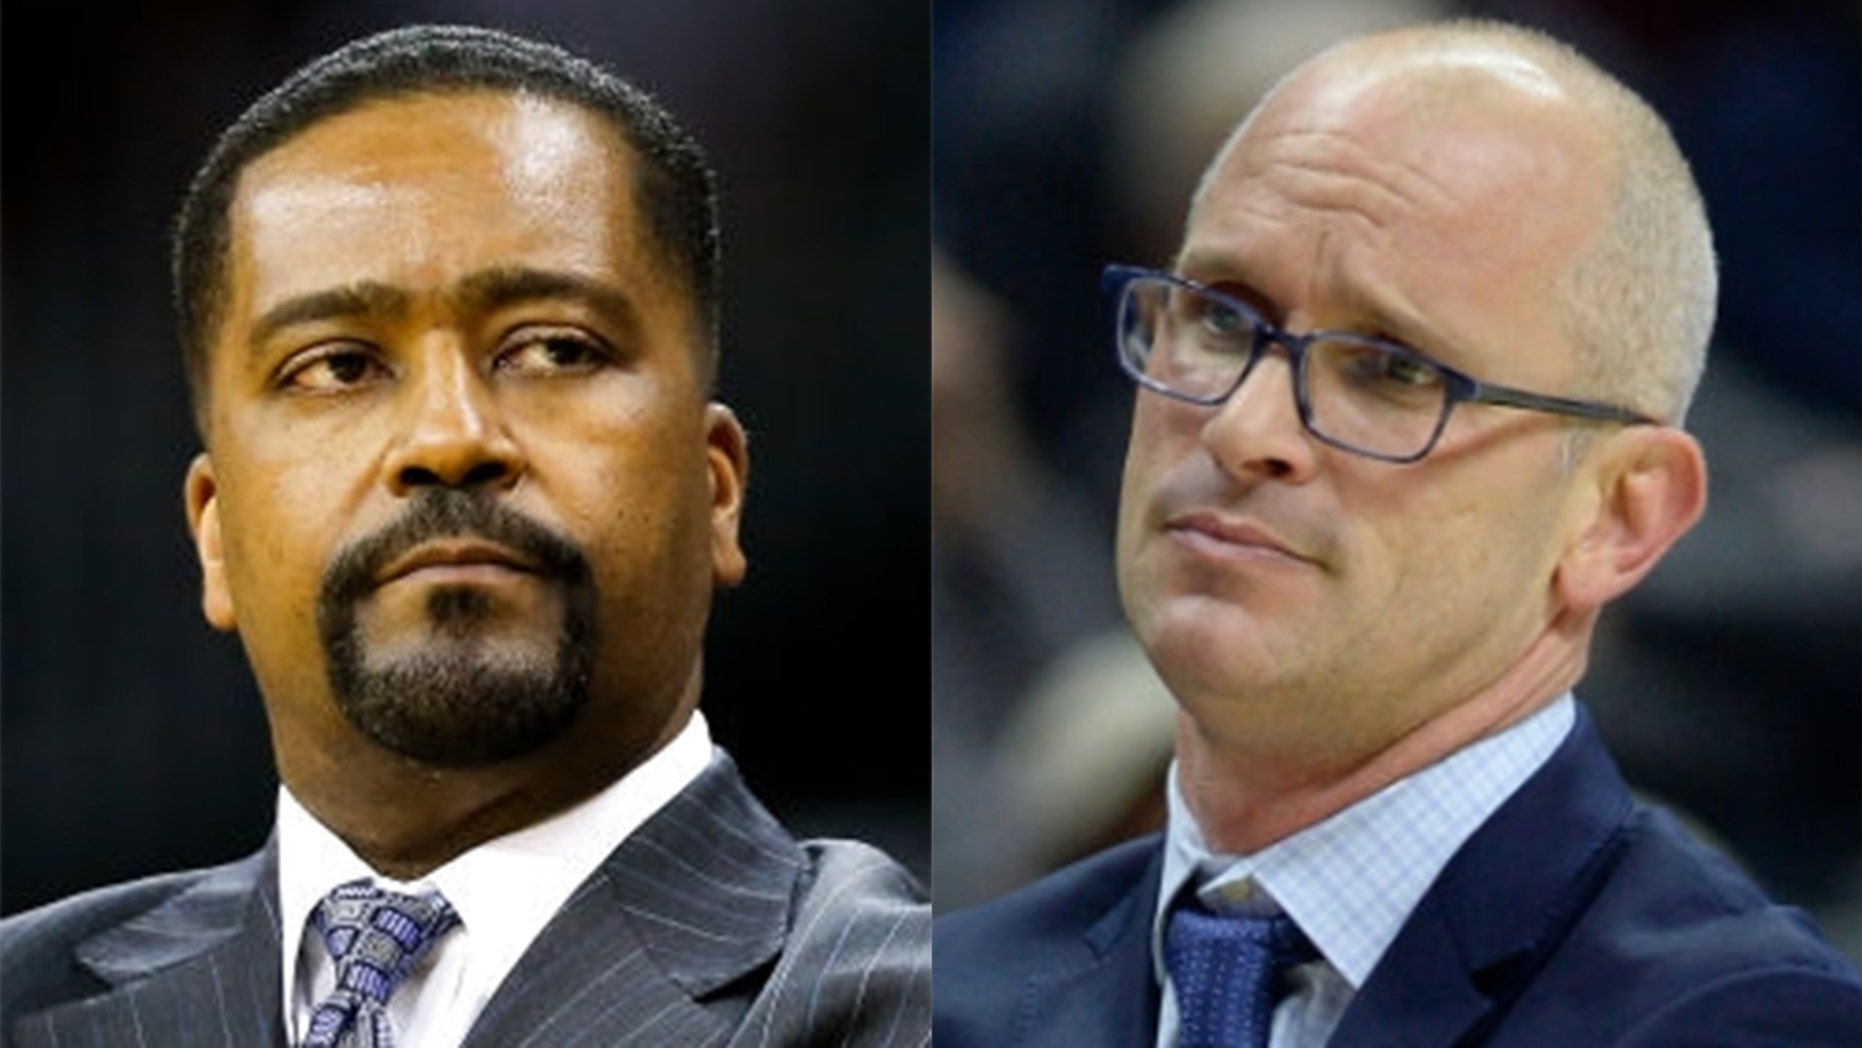 Frank Heath and Dan Hurley were thrown out during the match Wednesday night.